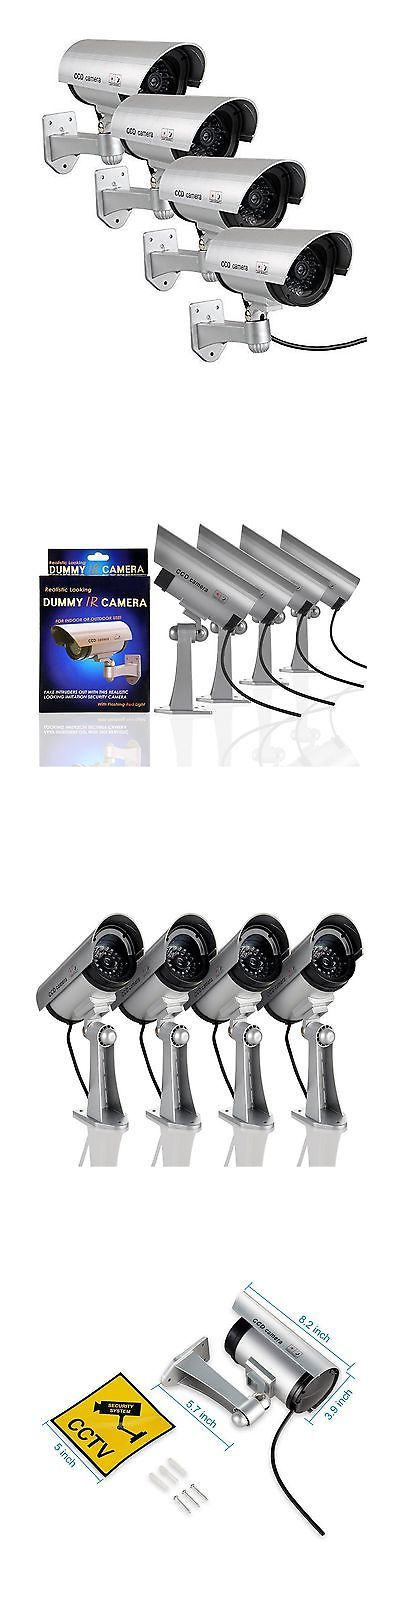 Dummy Cameras: Dummy Security Camera Cctv Removable Plastics Suit For Indoor Outdoor Occasio... -> BUY IT NOW ONLY: $33.77 on eBay!